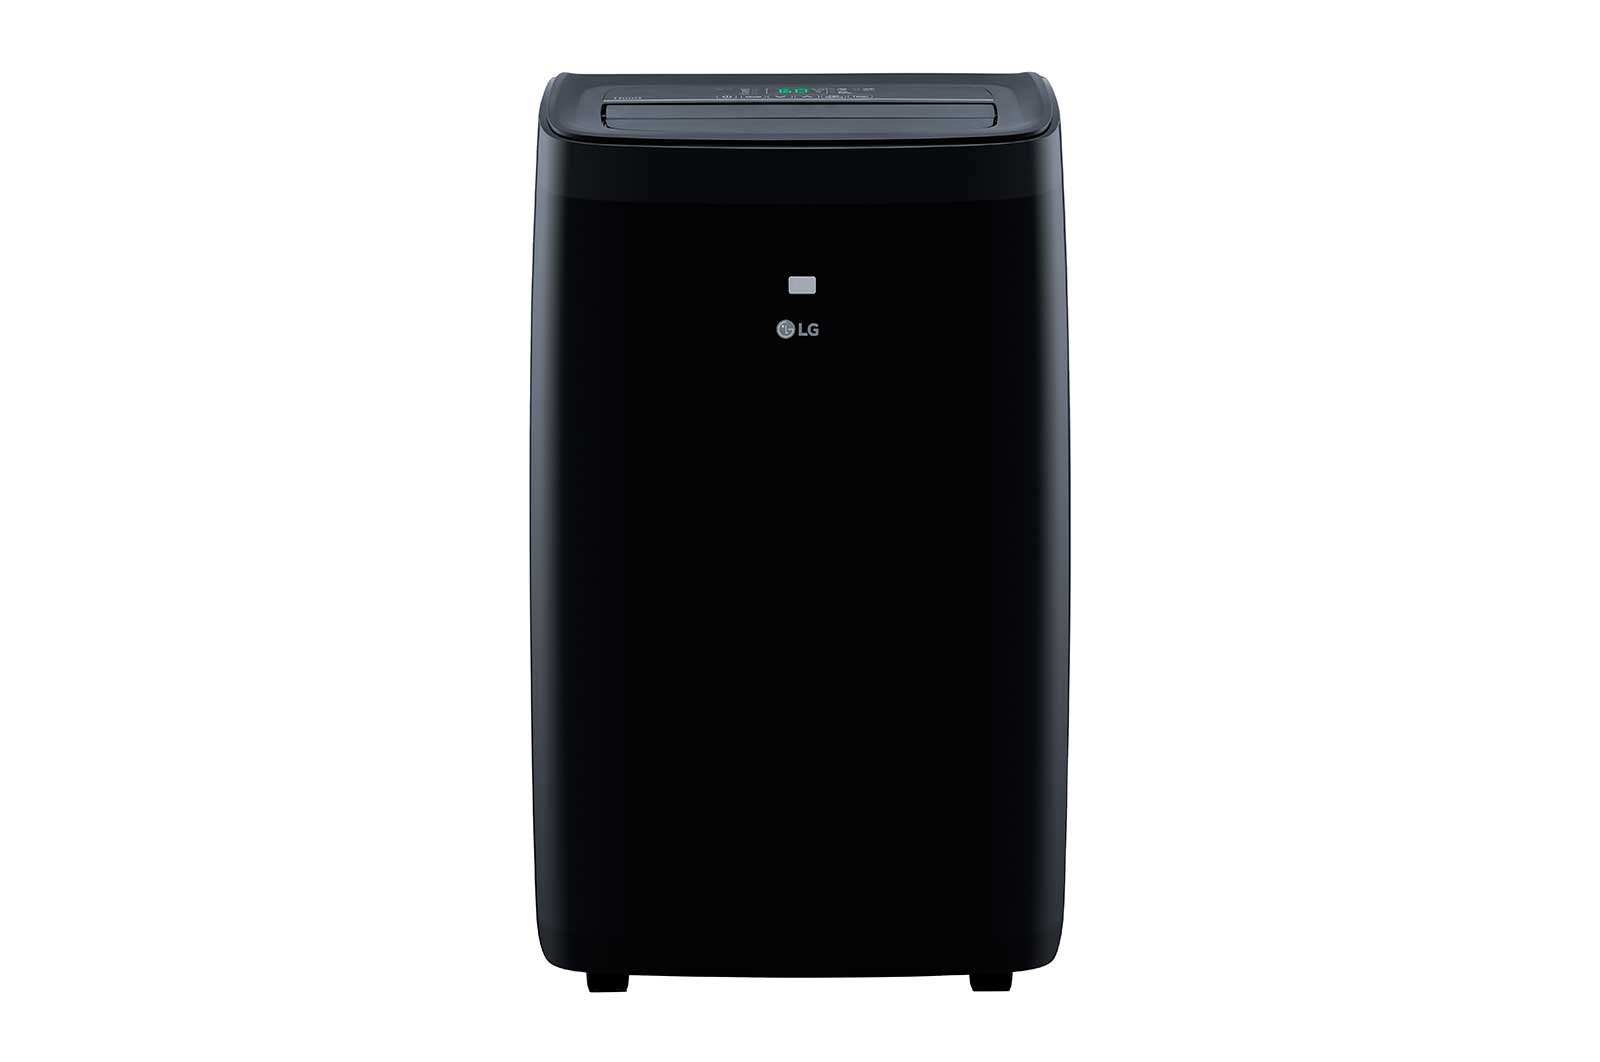 LG Appliances10,000 Btu Smart Wi-Fi Portable Air Conditioner, Cooling & Heating